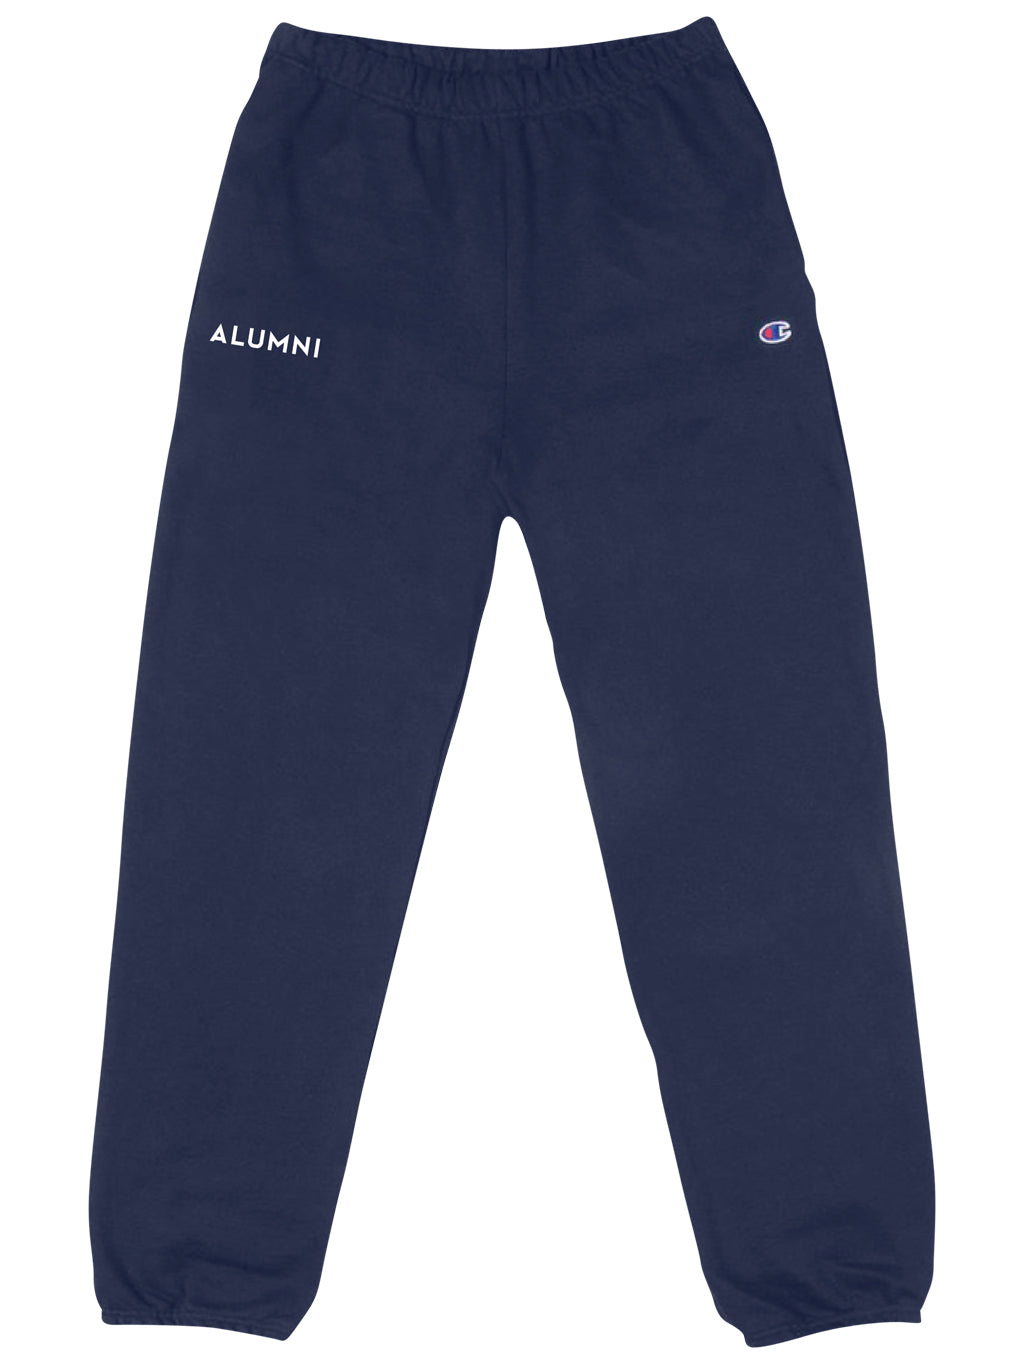 Navy & Black Logo Sweatpants